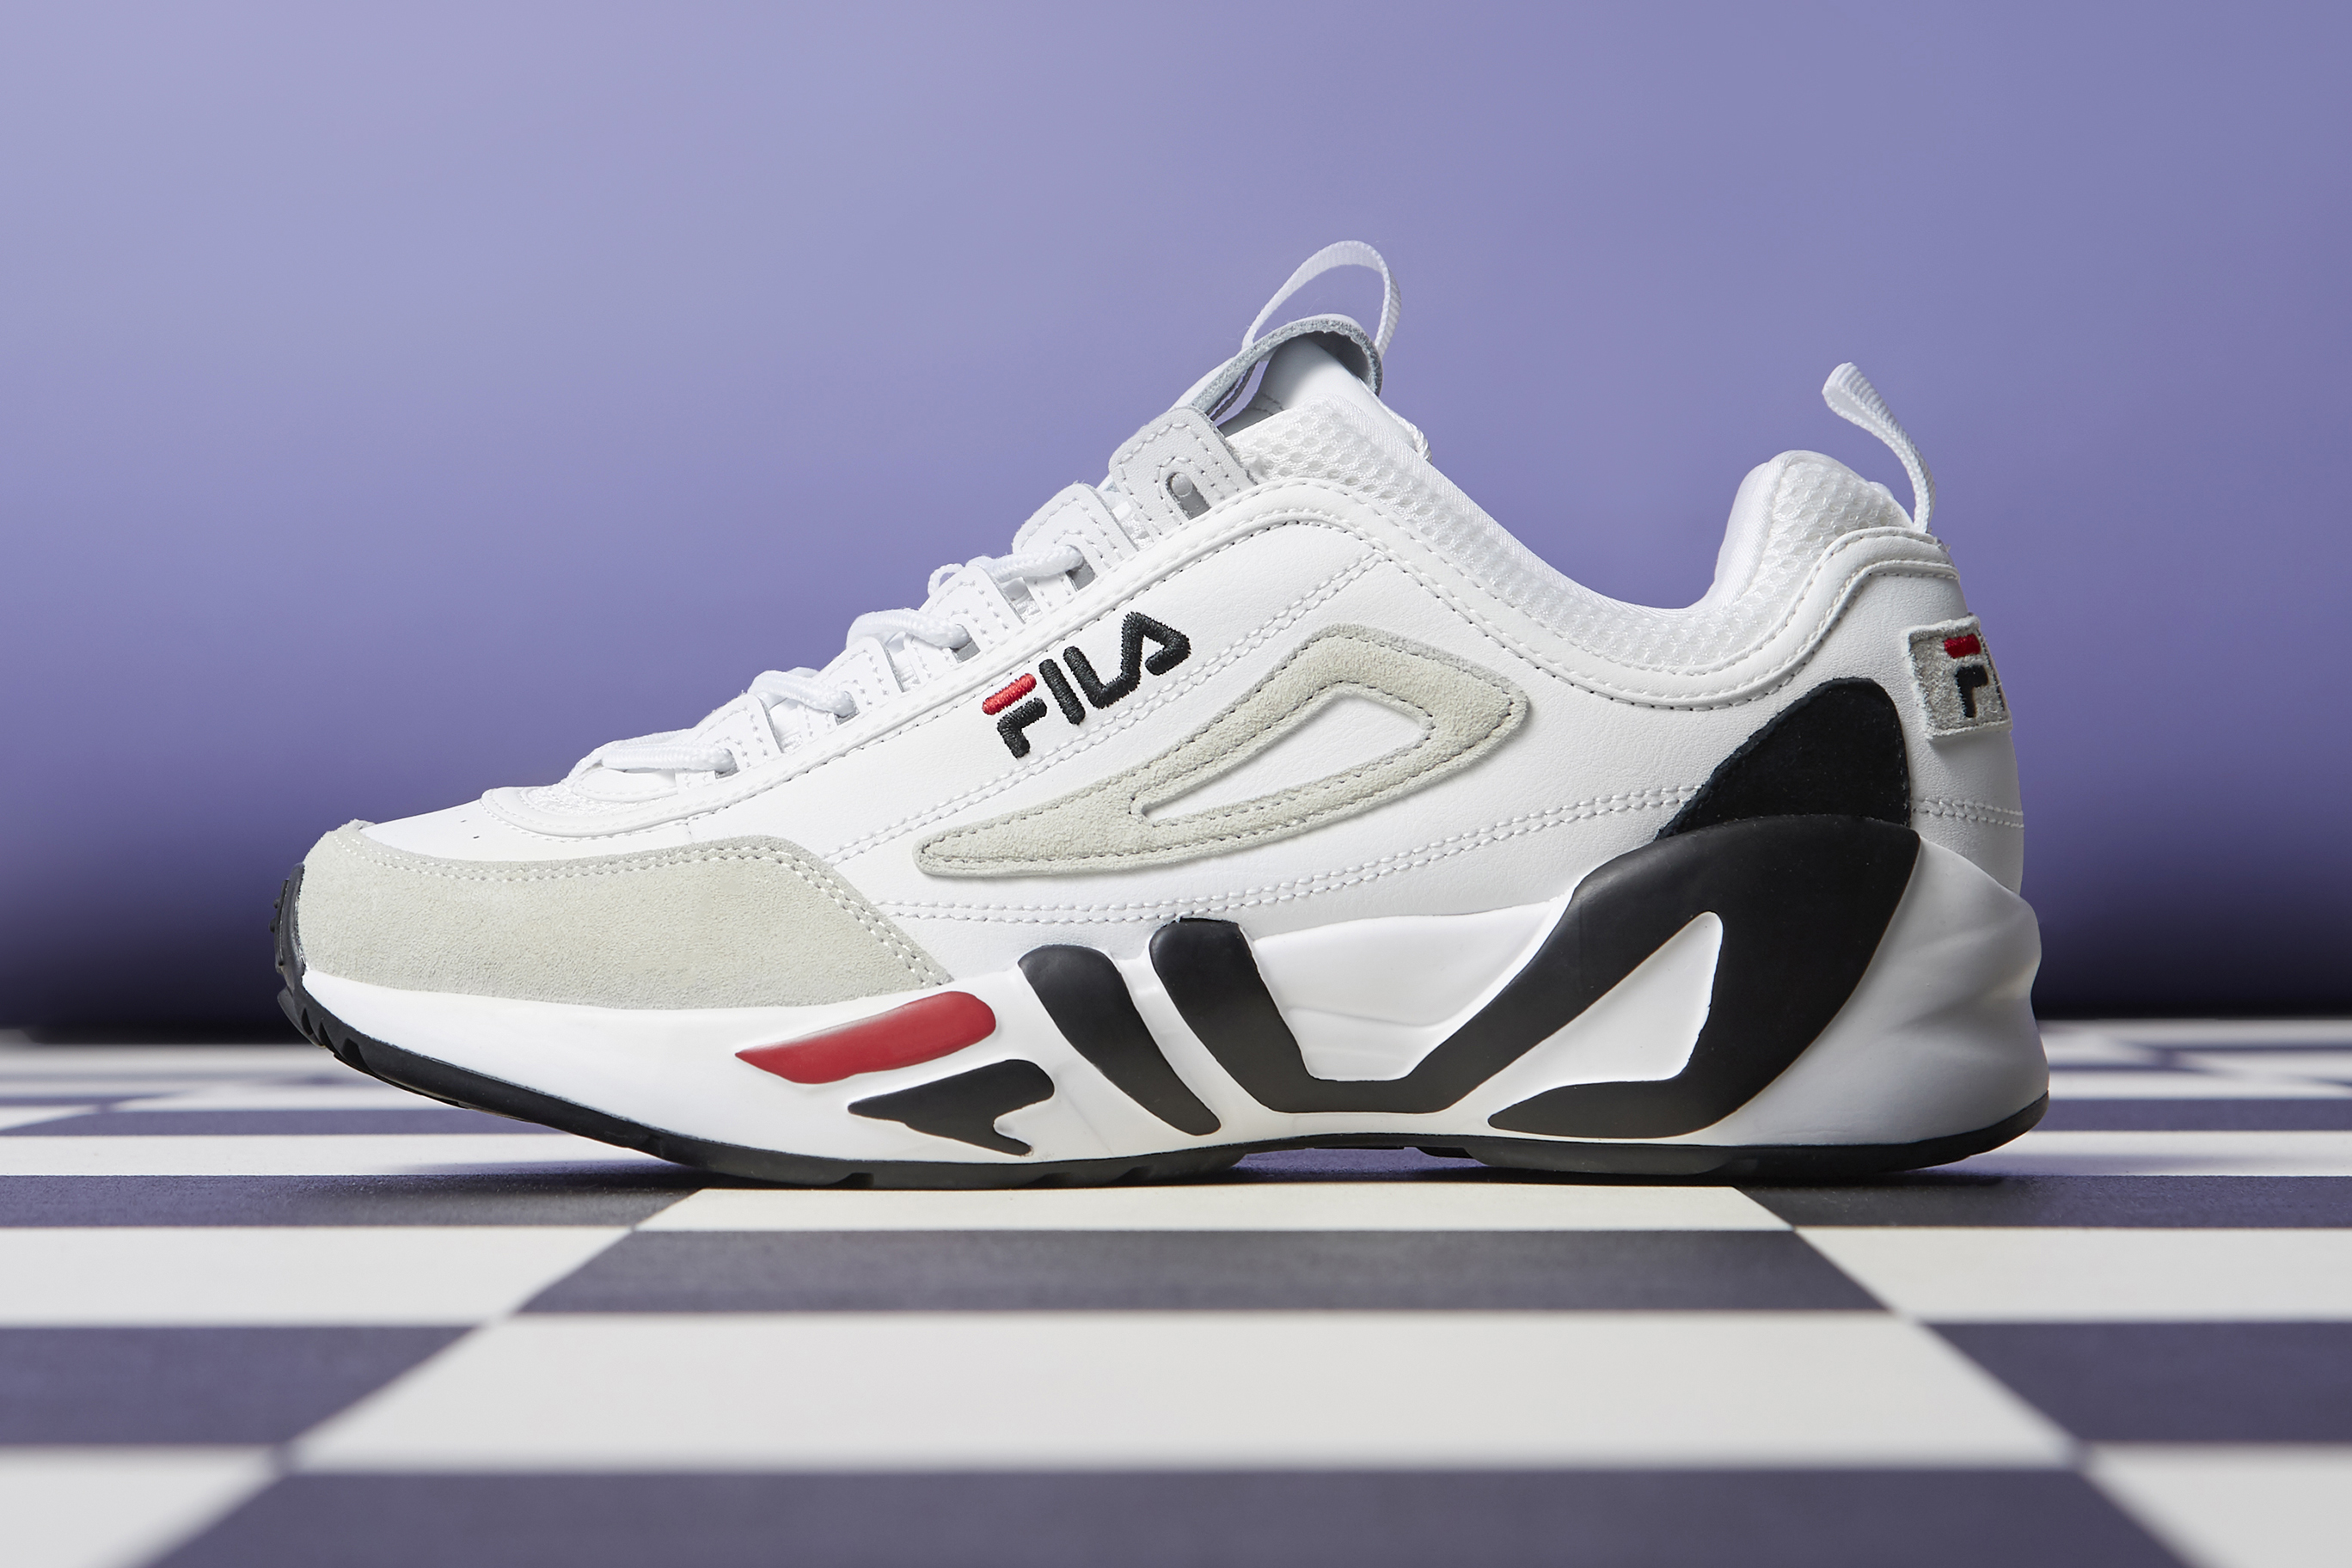 642757ae172d FILA Hybrid Collection - size? Exclusive - size? blog